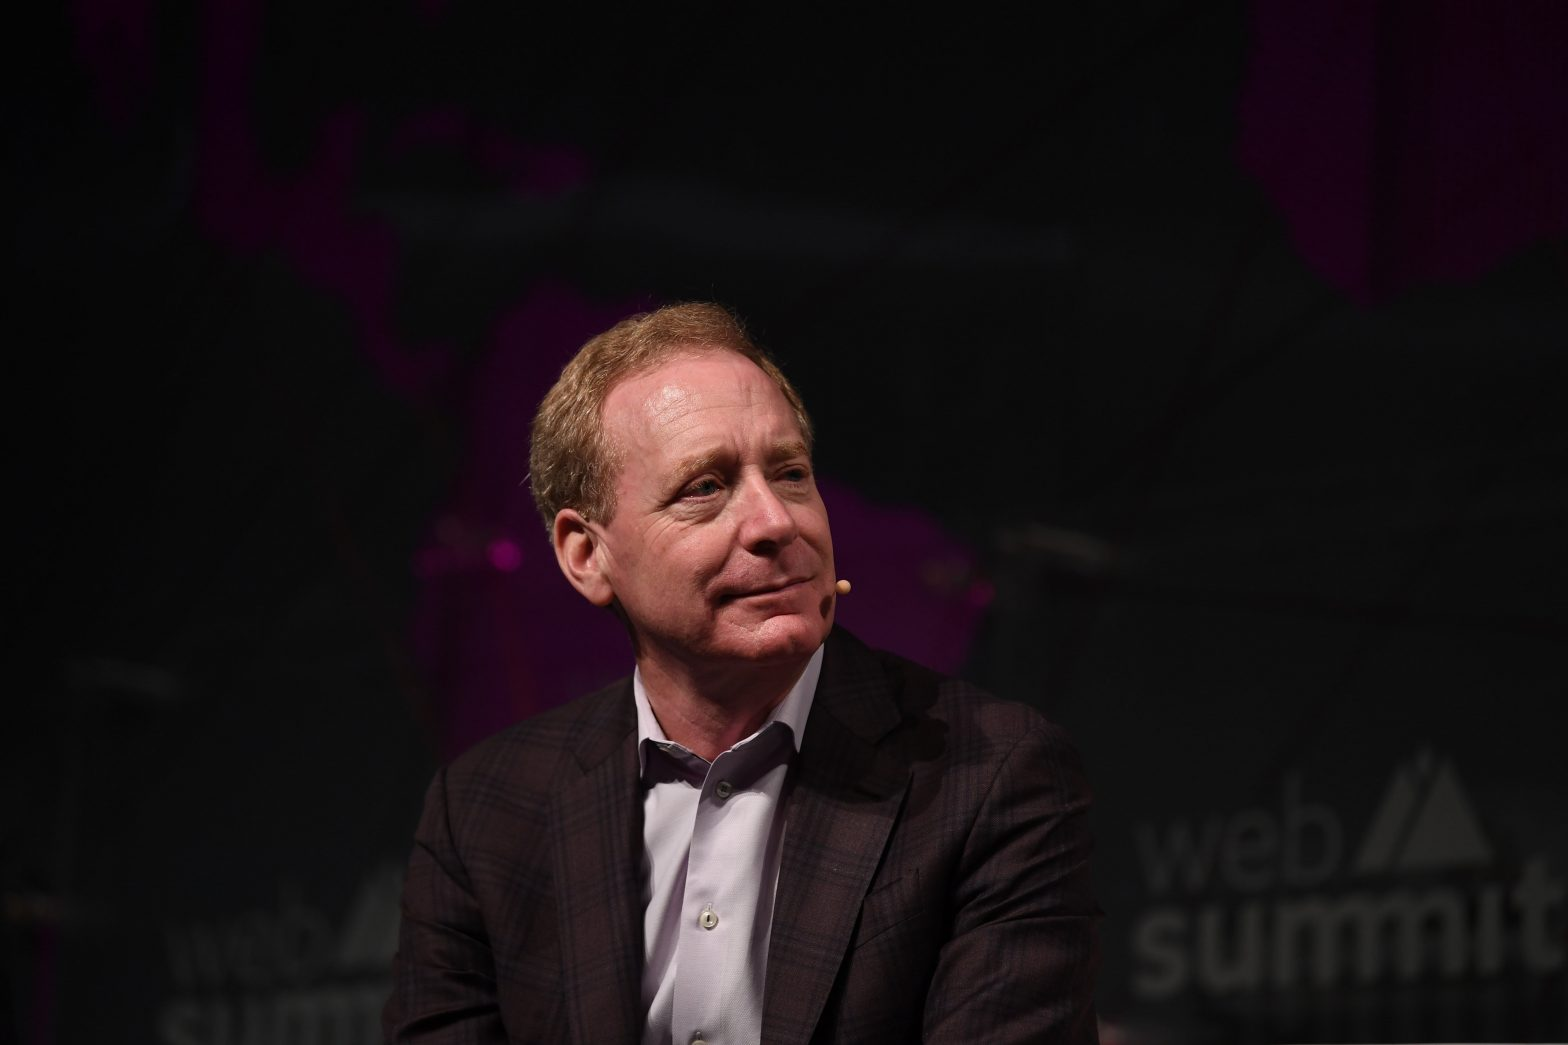 Microsoft President Brad Smith says work on JEDI continues despite Amazon protest – CNBC